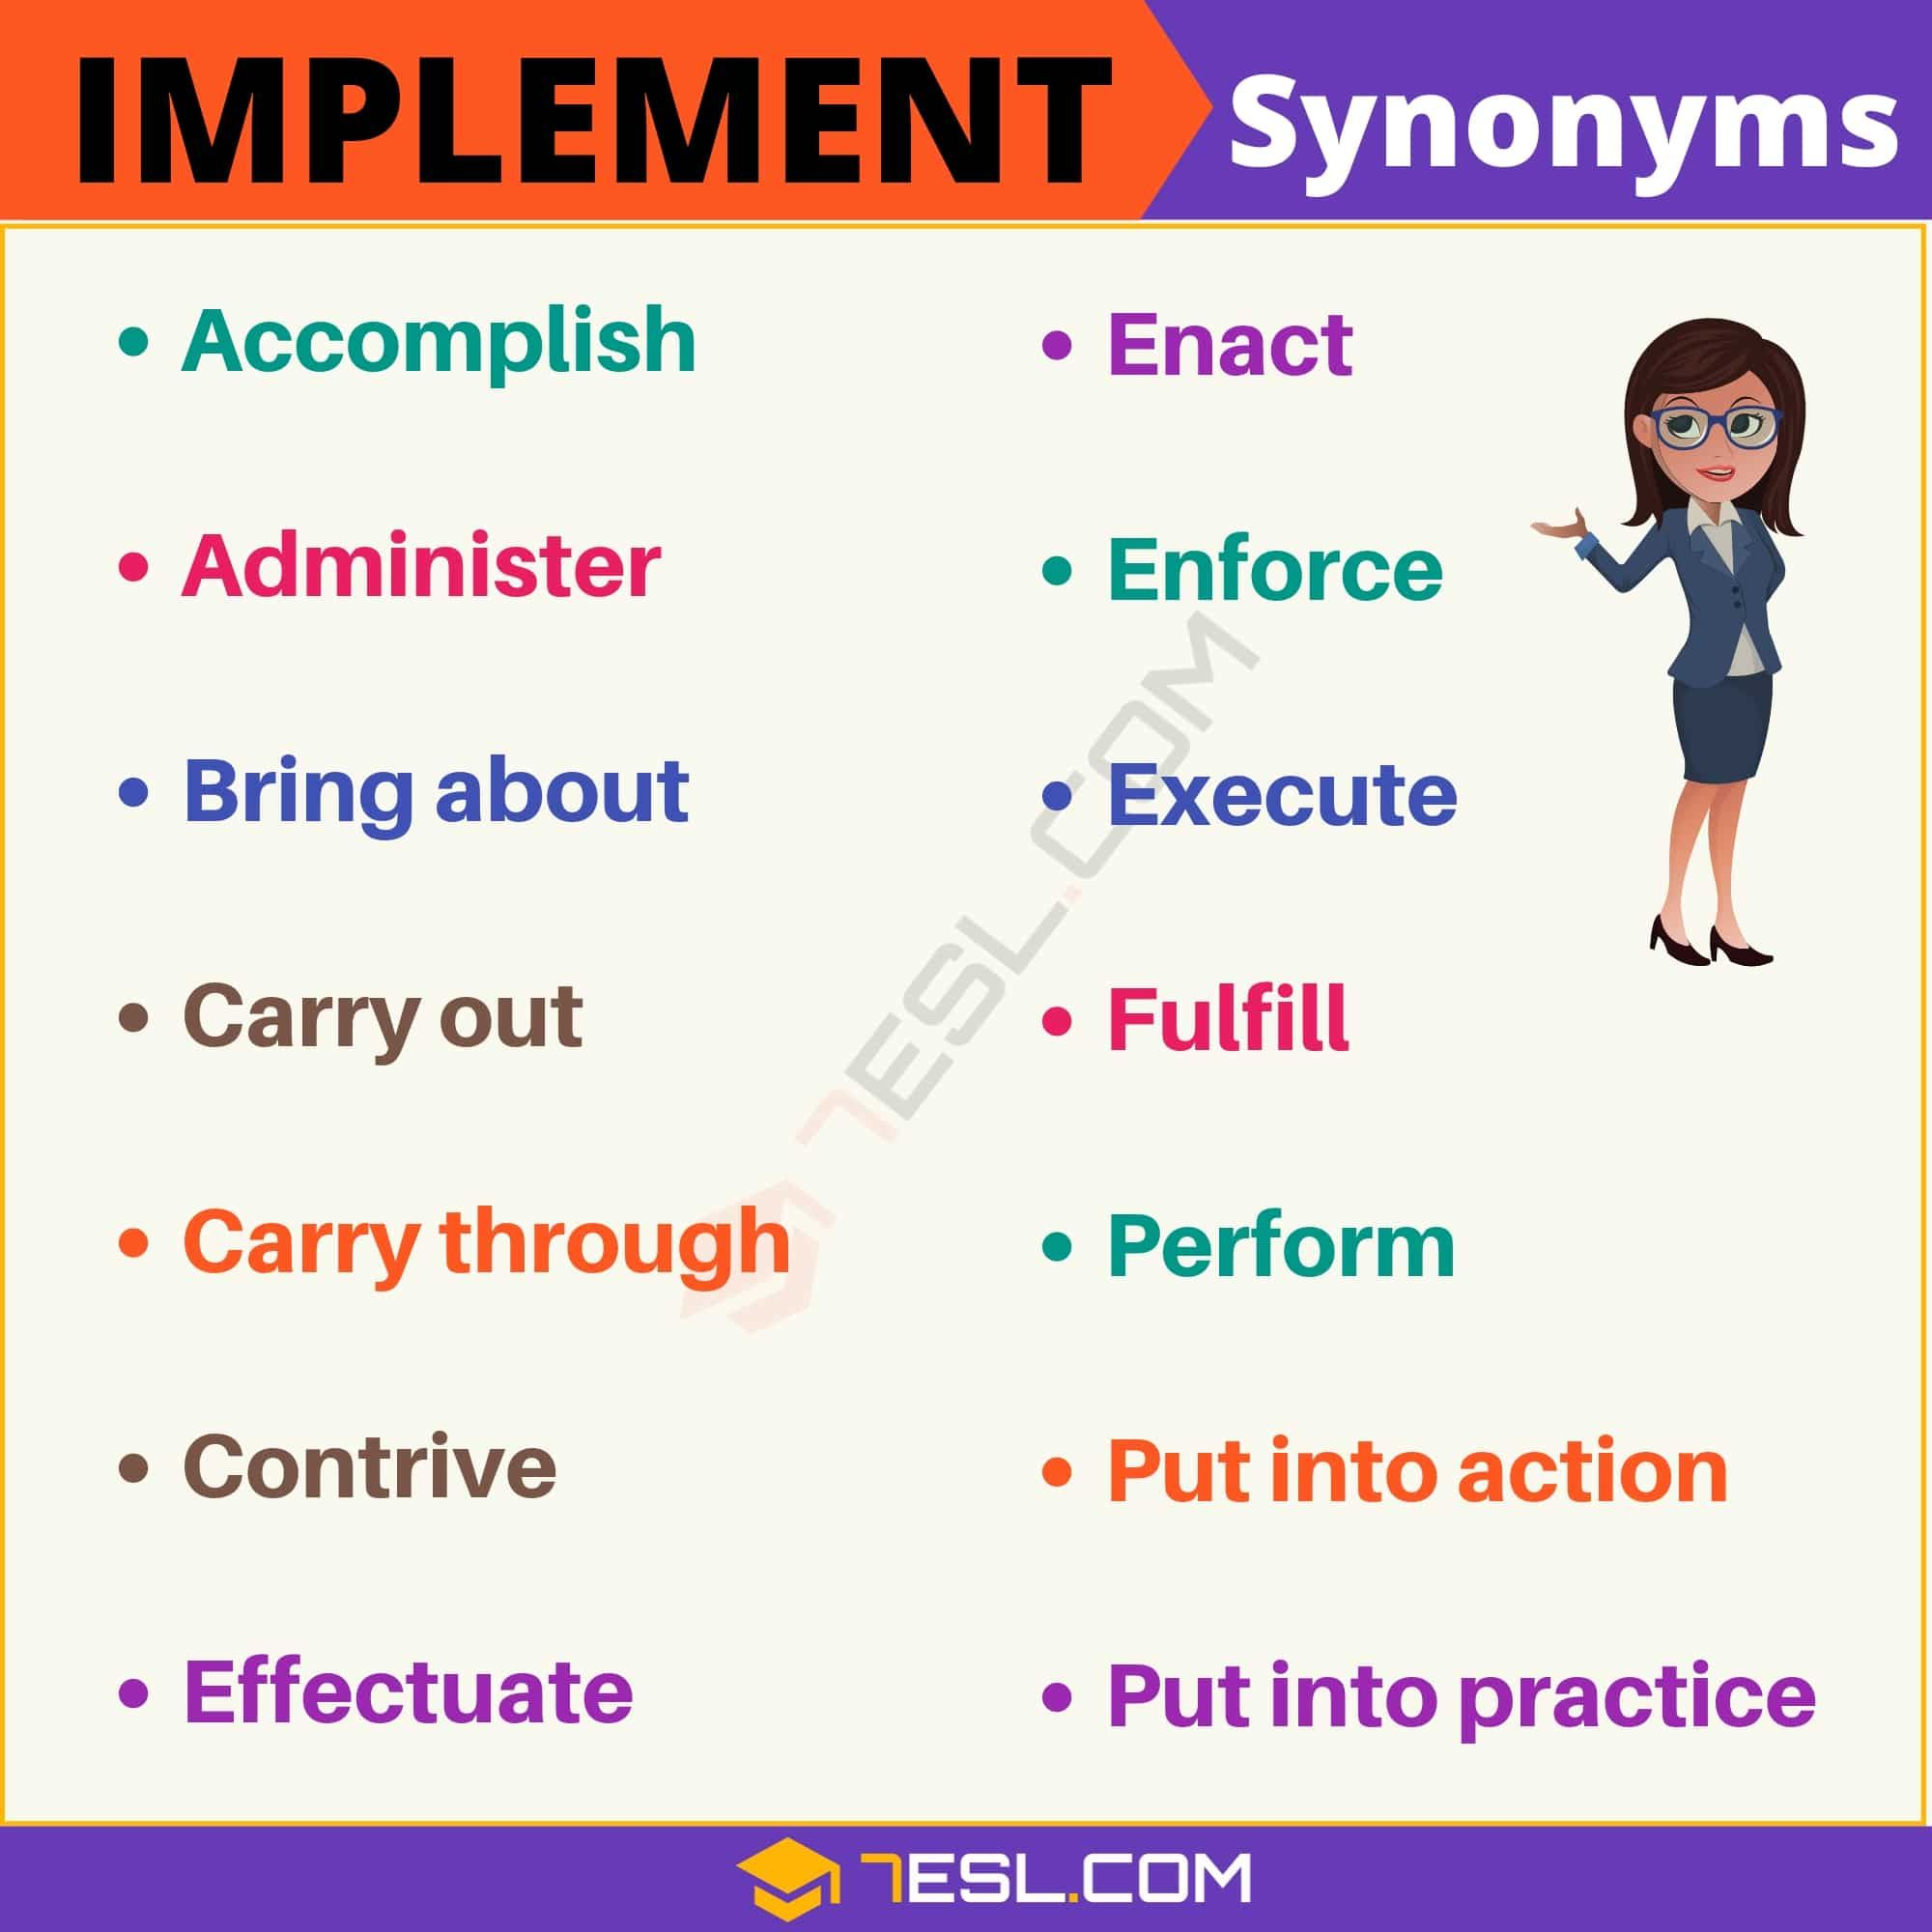 implement synonym of synonyms for with useful examples essay writing skills words Resume Implement Synonym Resume